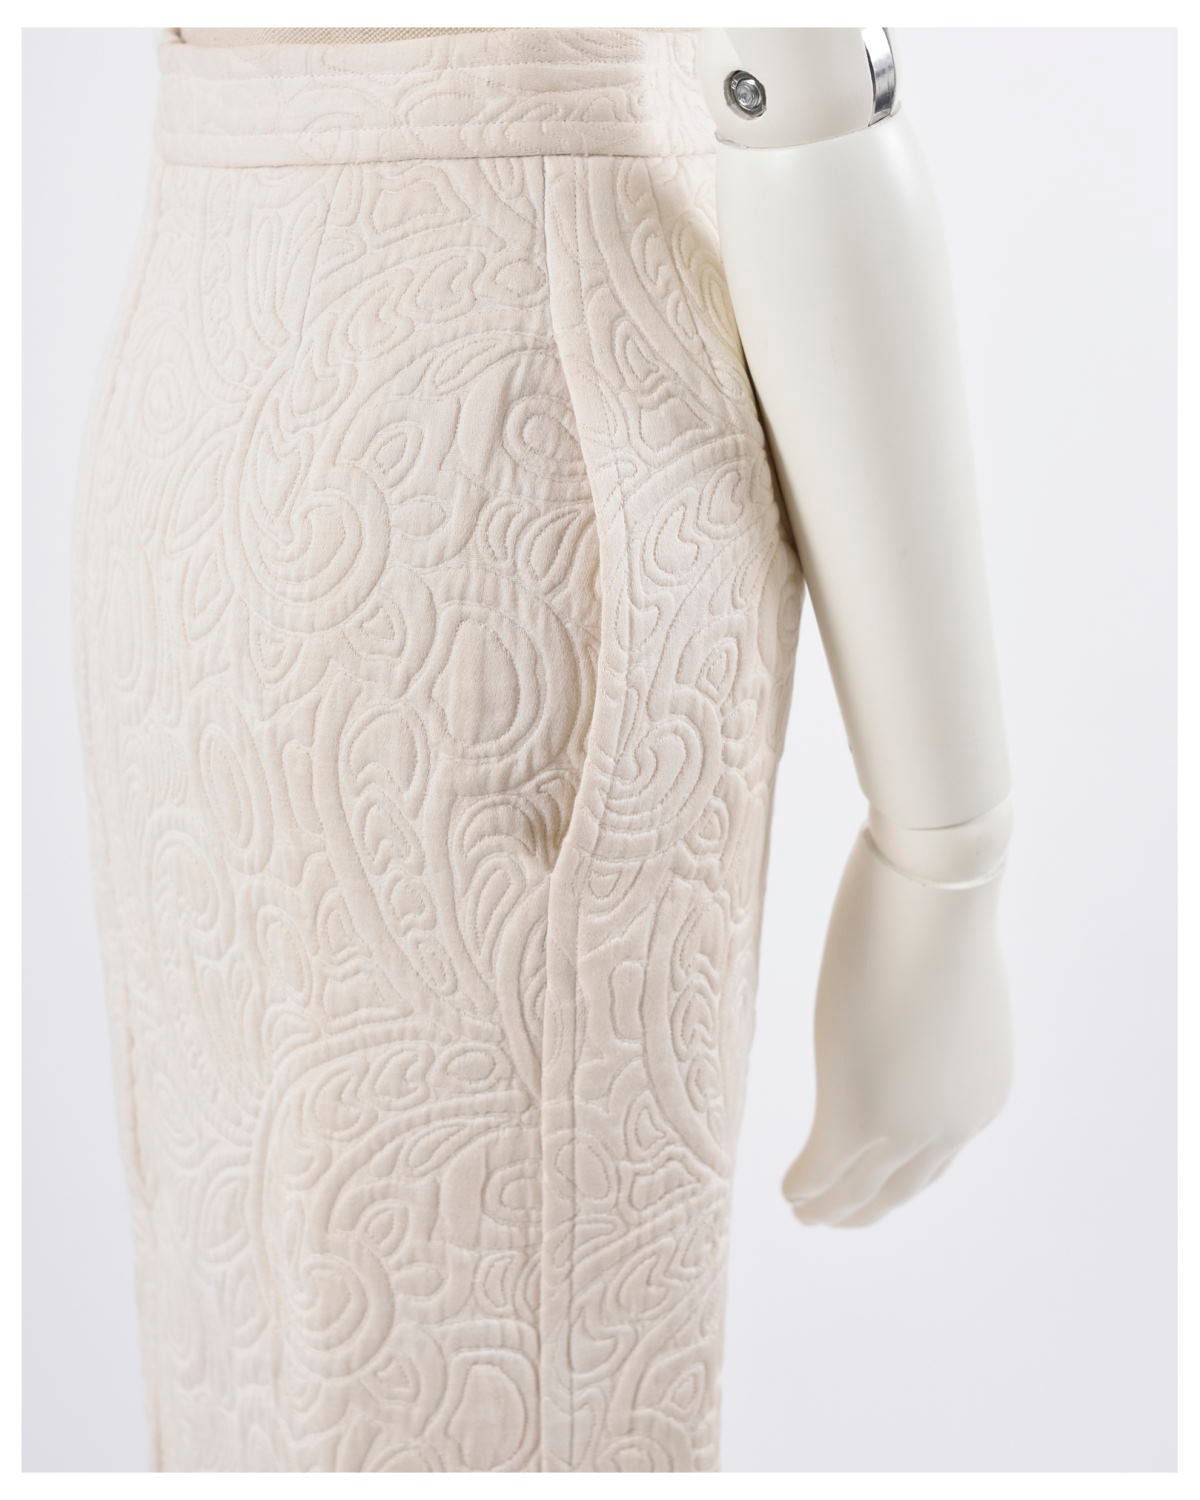 1980s Ivory Quilted Suit Dress